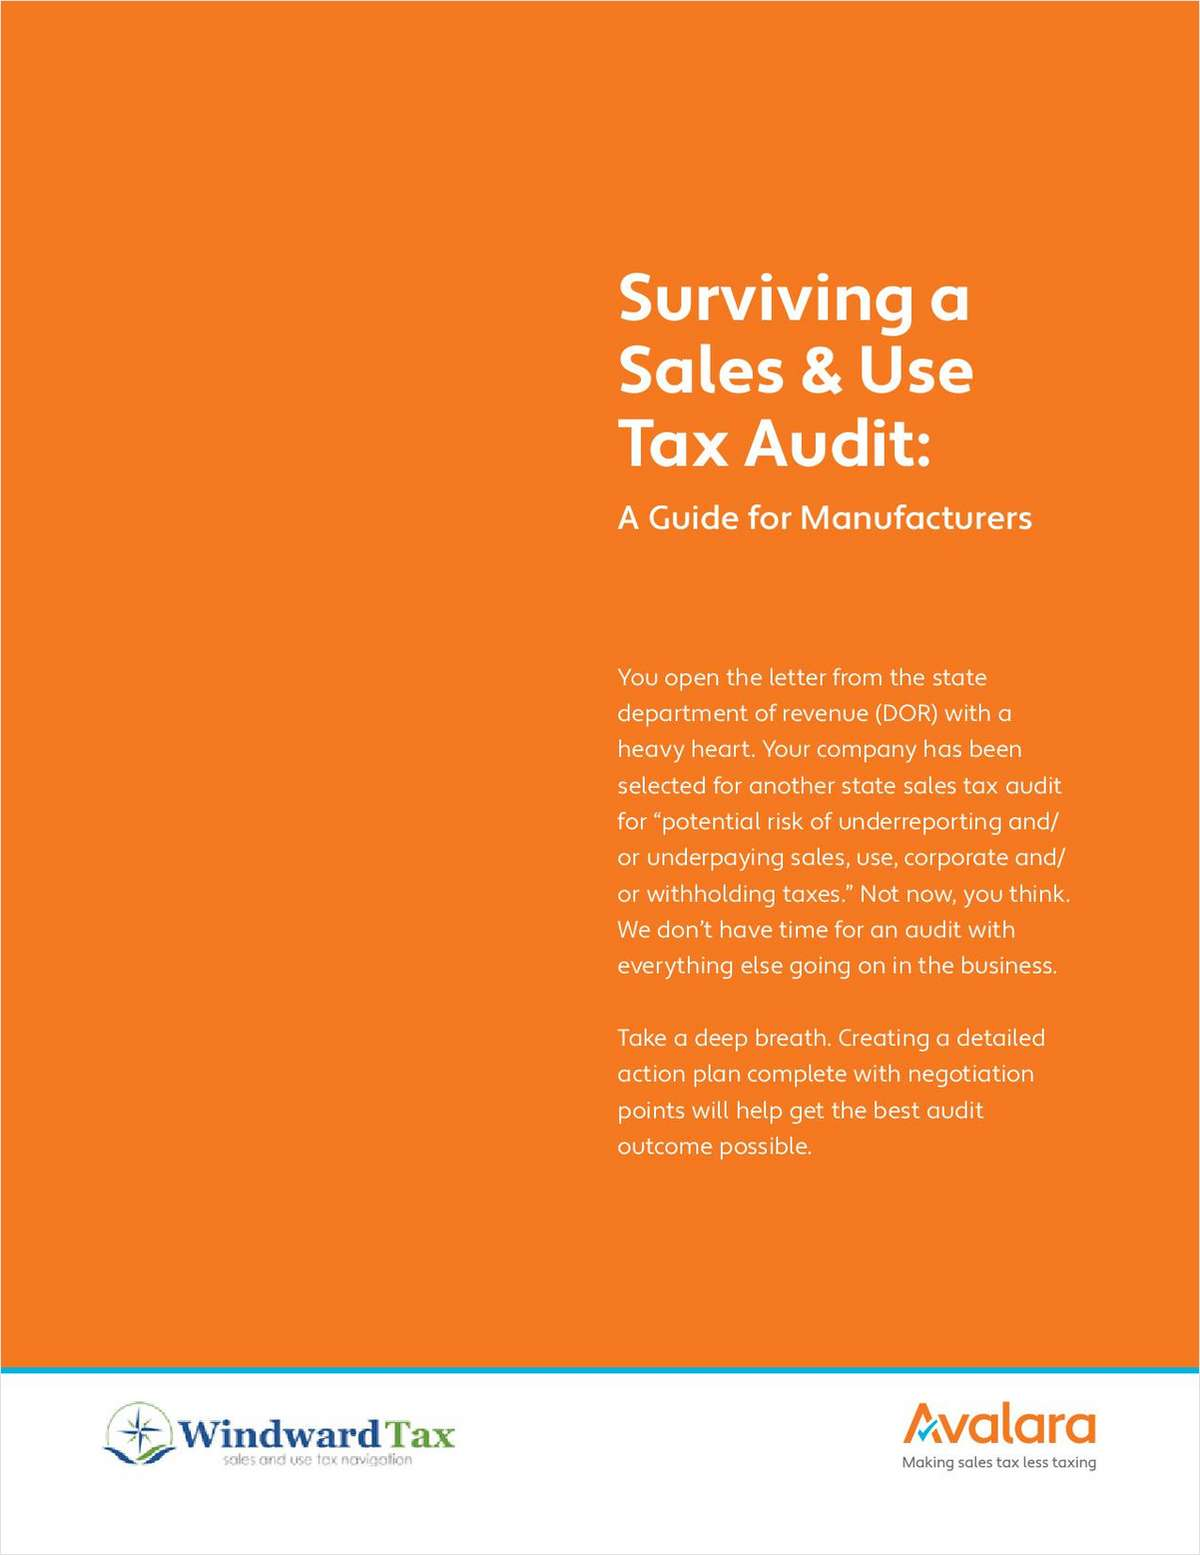 Surviving a Sales & Use Tax Audit: A Guide for Manufacturers